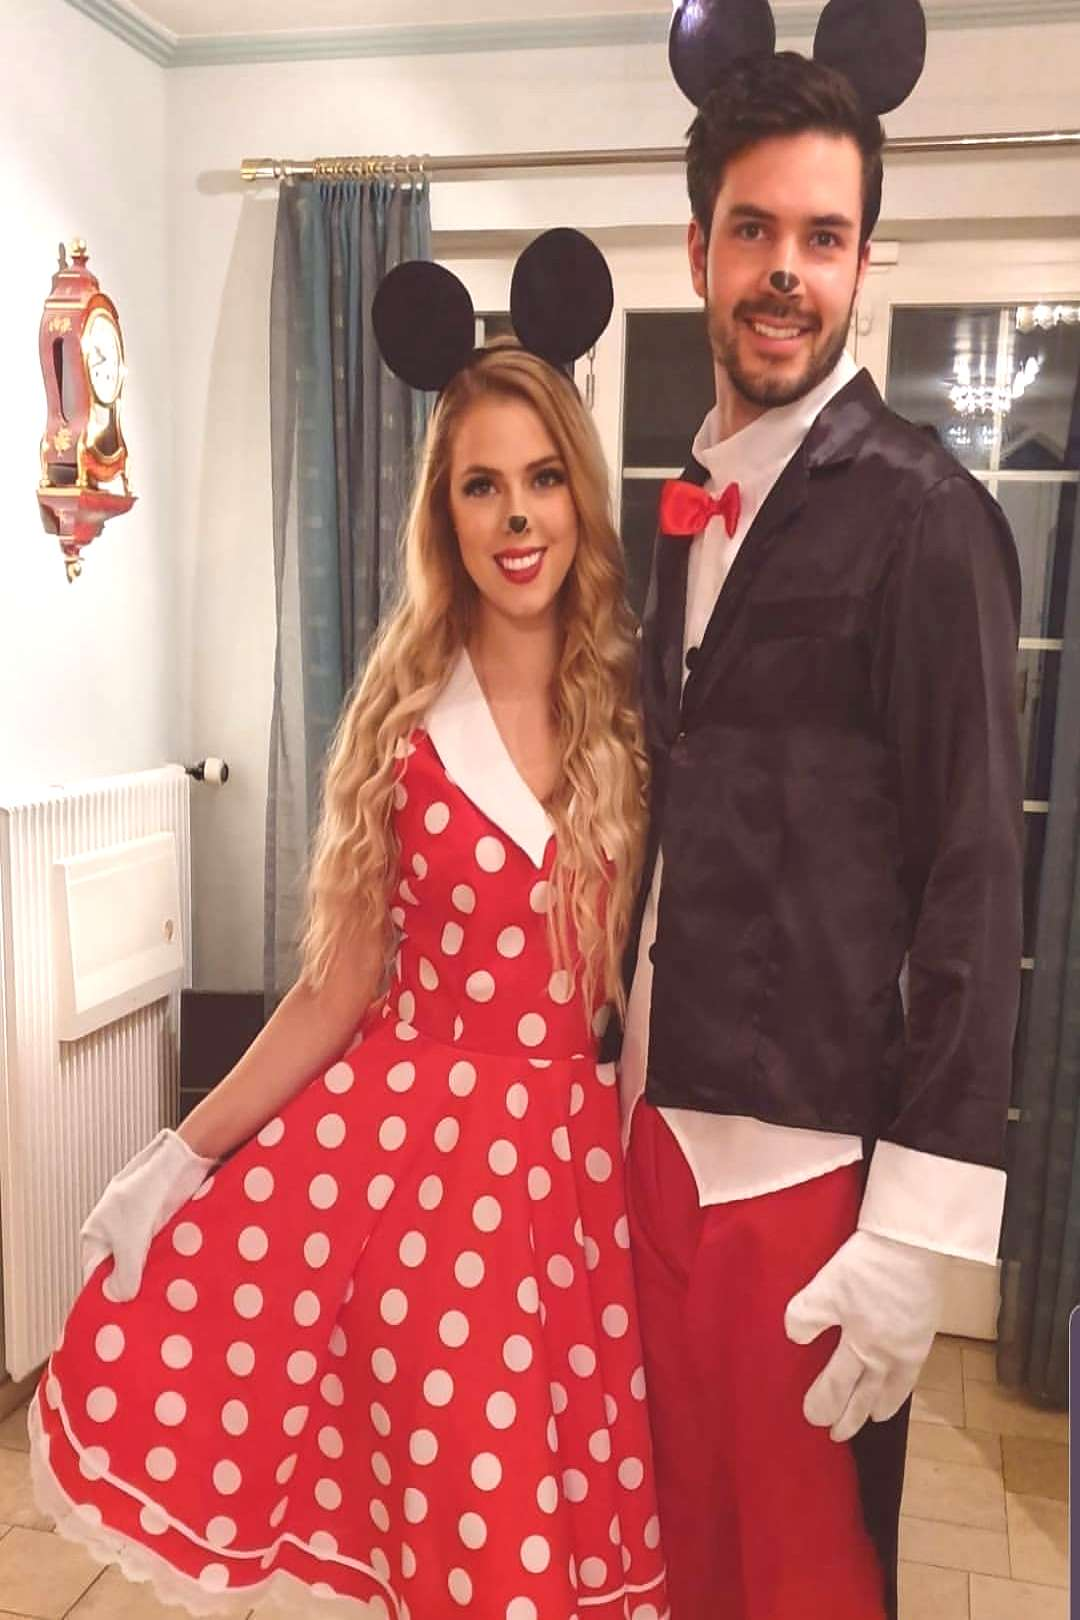 The Micky to my Minnie Mouse, the devil to my angel * * * #costum